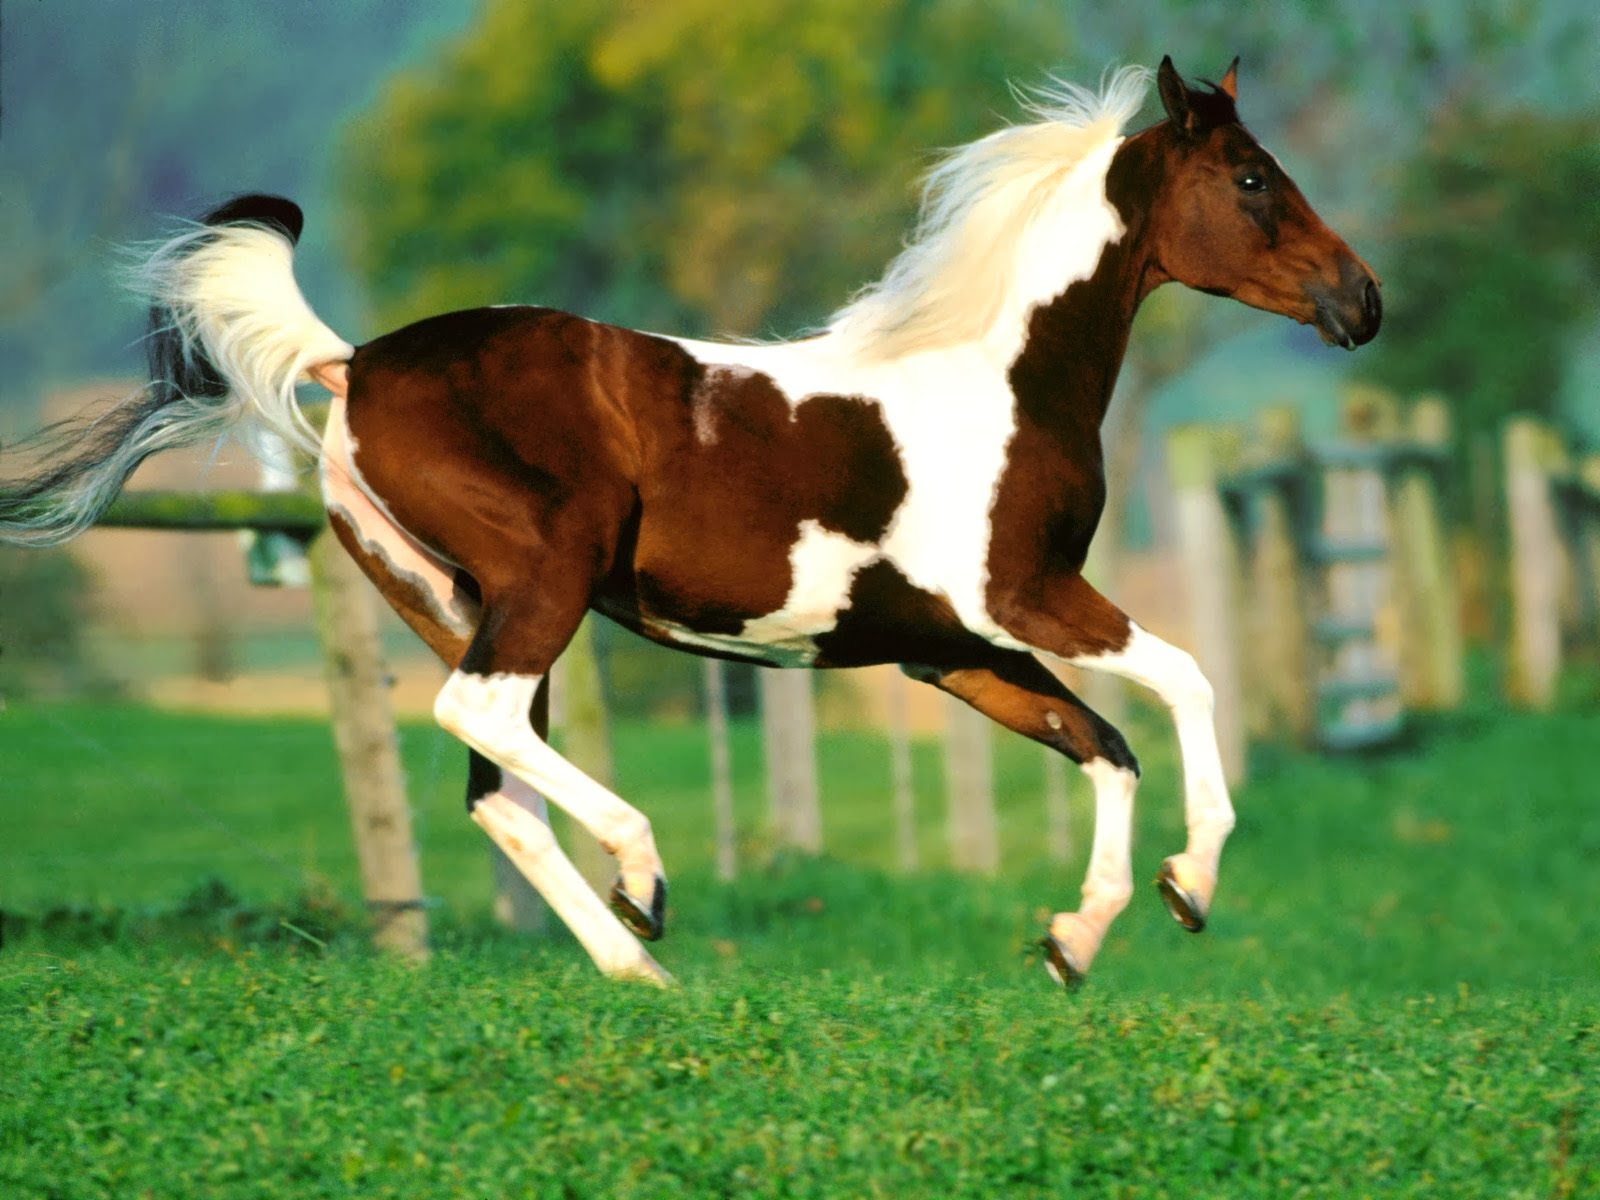 Horse Wallpapers Hdhorses Pictures For FacebookBlack Horseswhite Horses Red PicturesBeautiful Horseshorse In Water